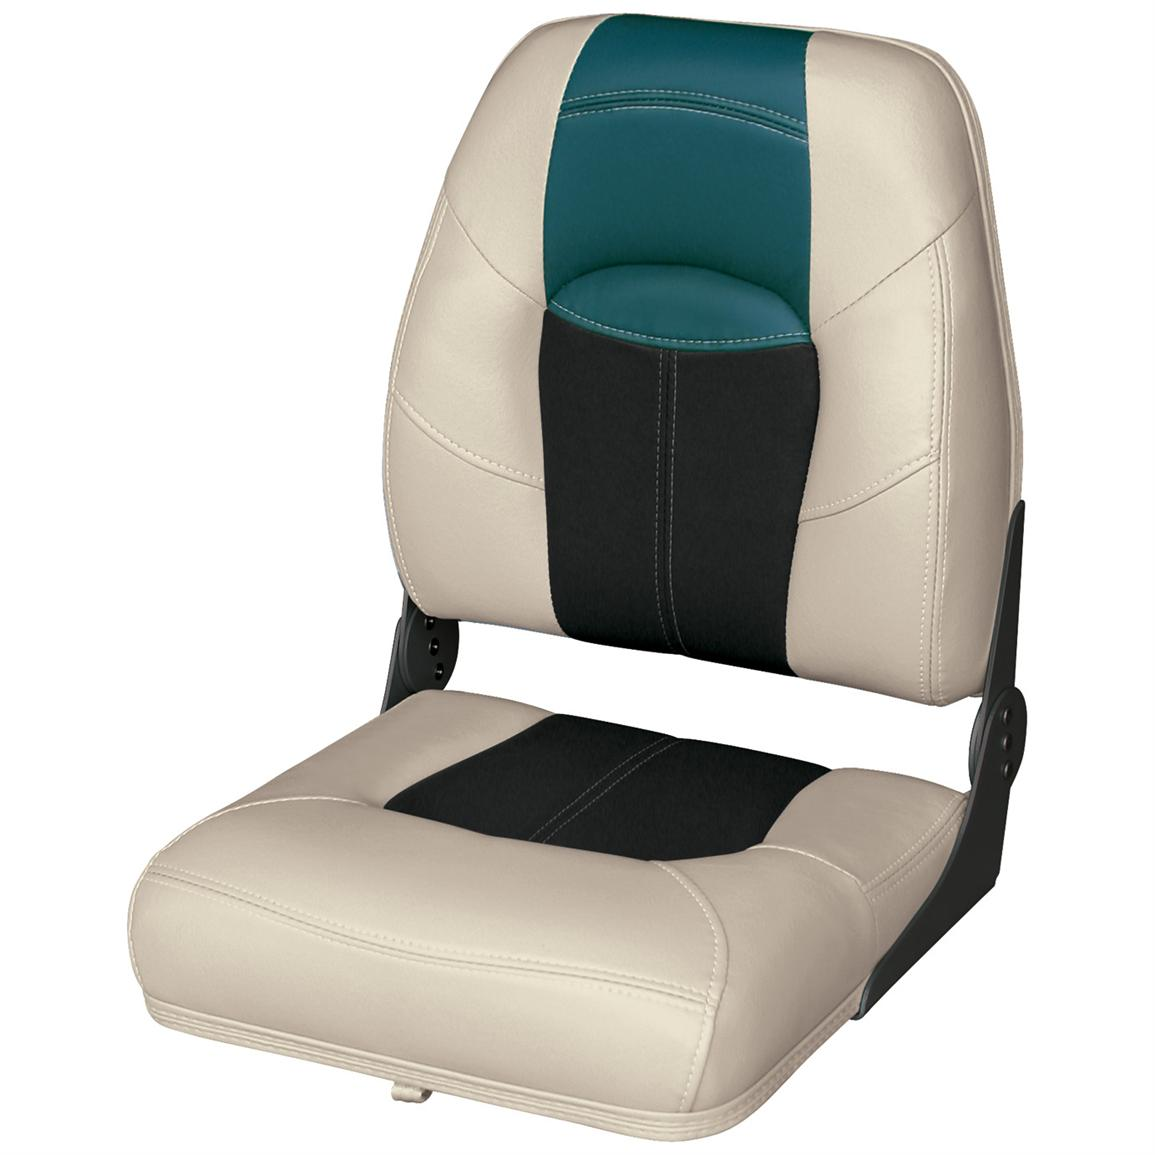 Wise® Blast-Off™ Series High Back Folding Boat Seat, Mushroom / Black / Green